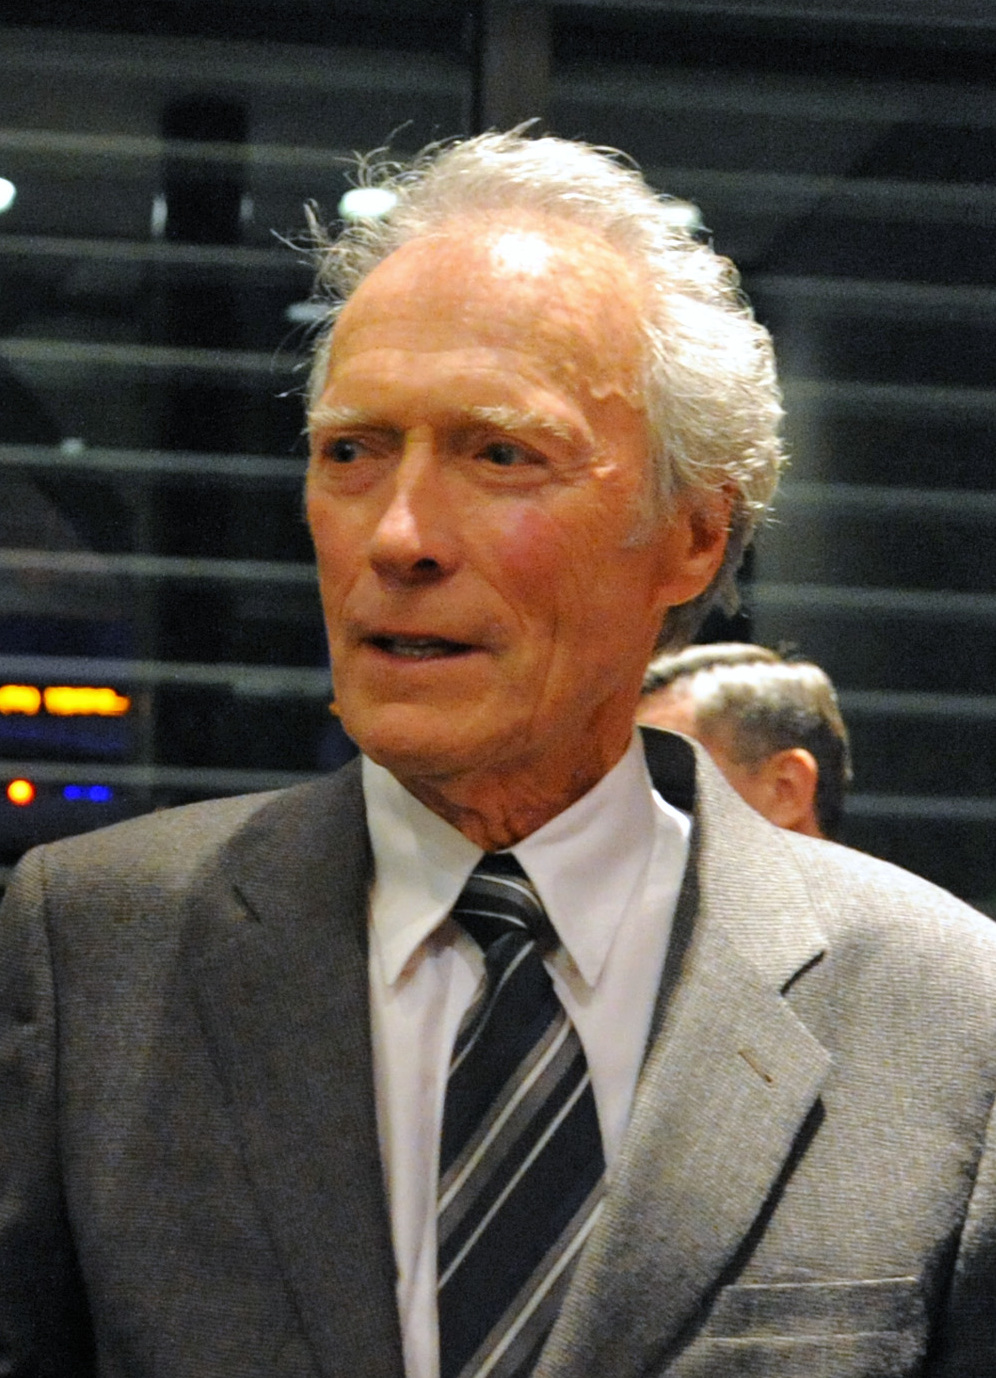 Clint Eastwood - Wikipedia